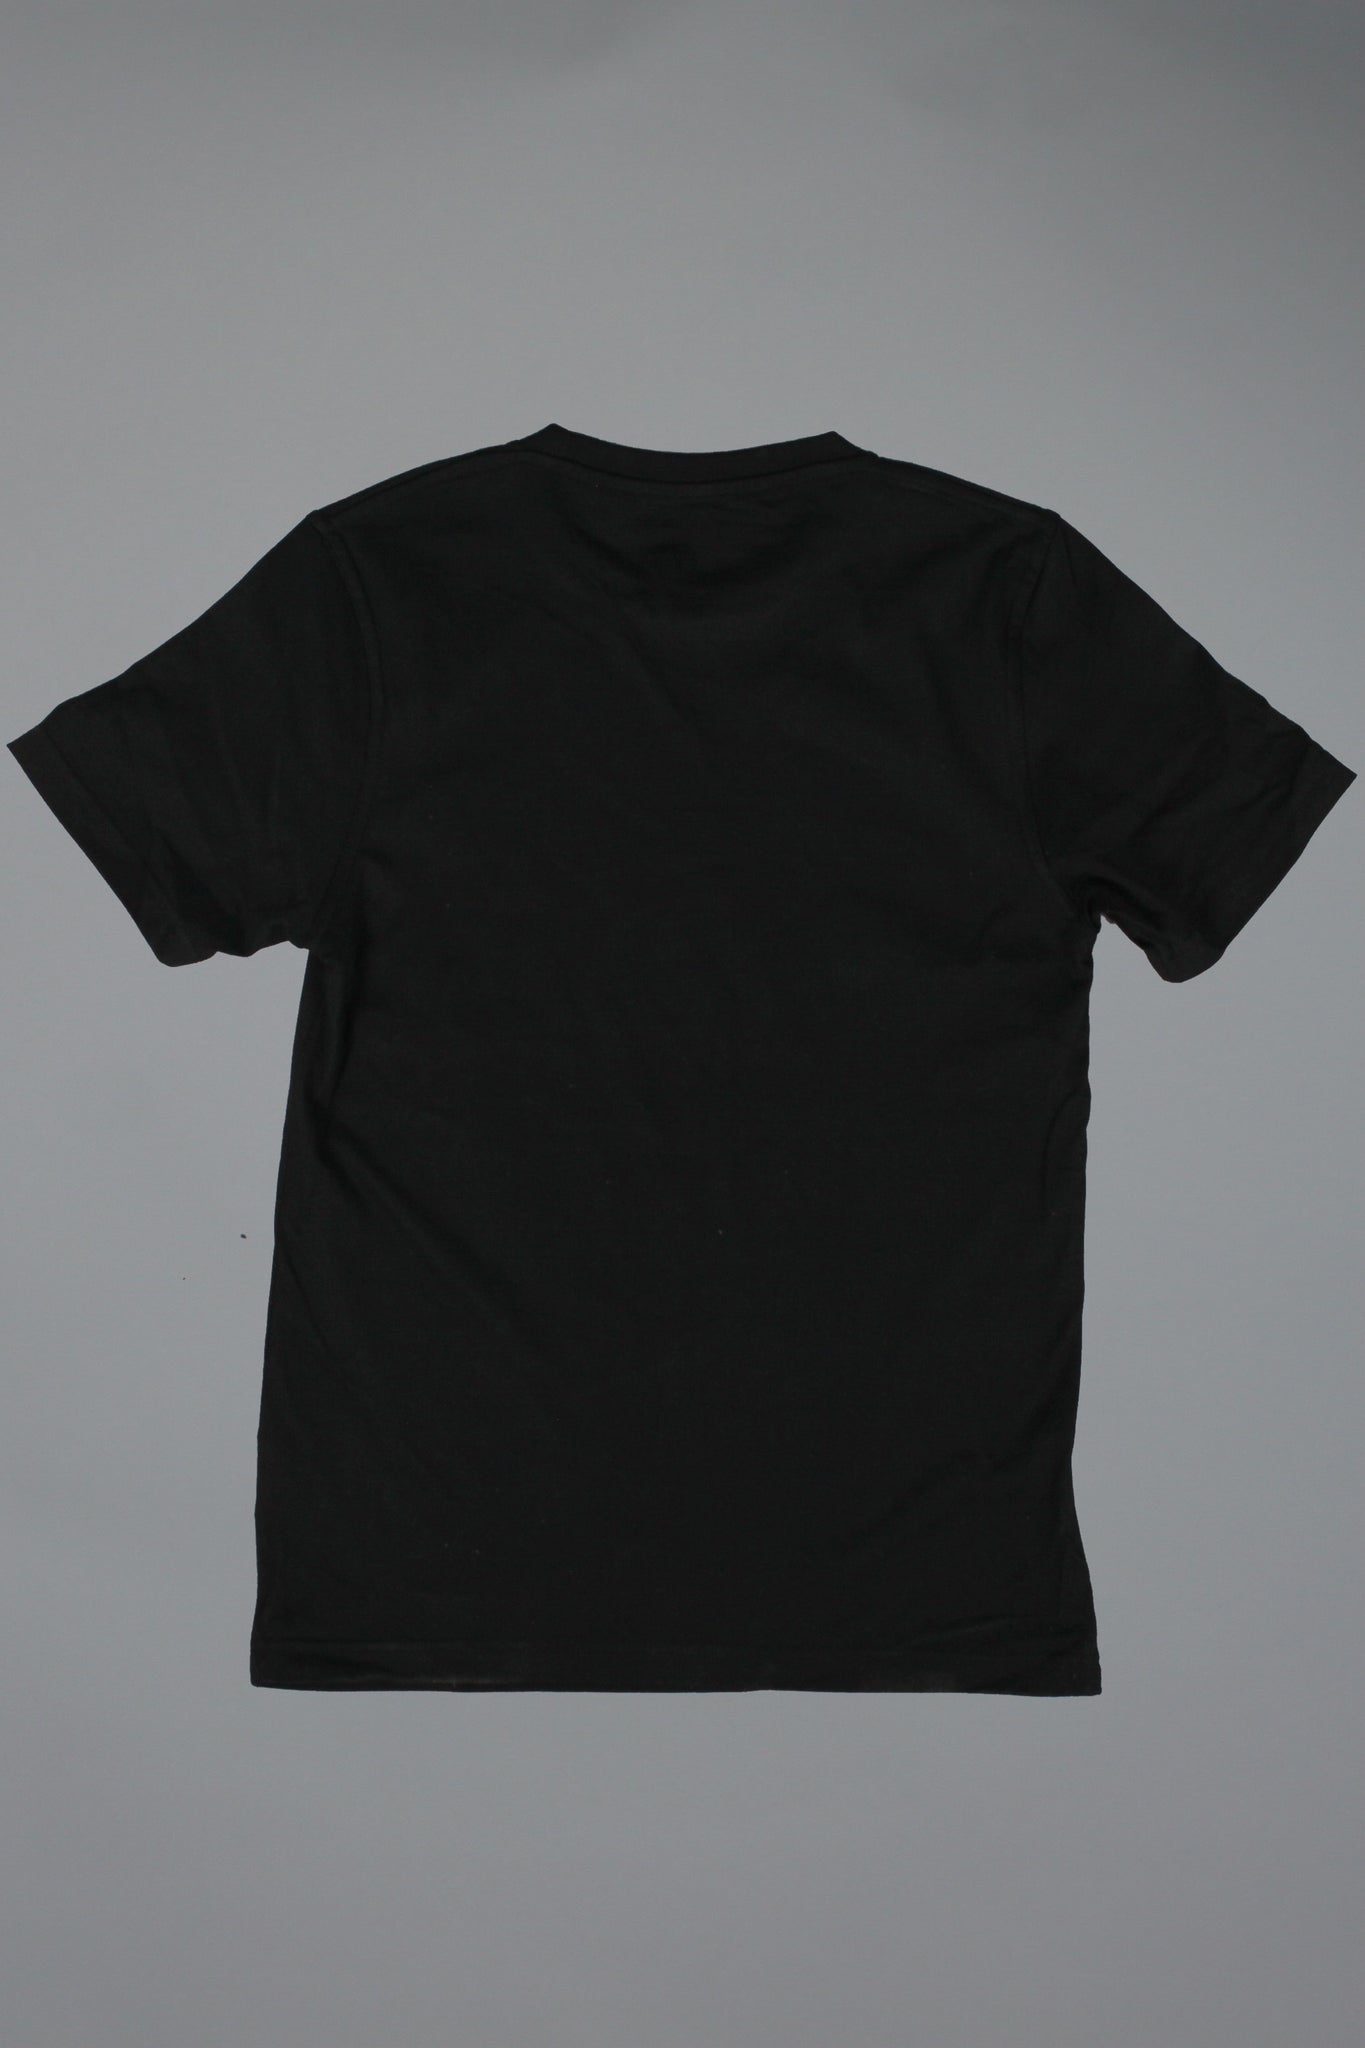 STREET WORMS T-SHIRT / BLACK